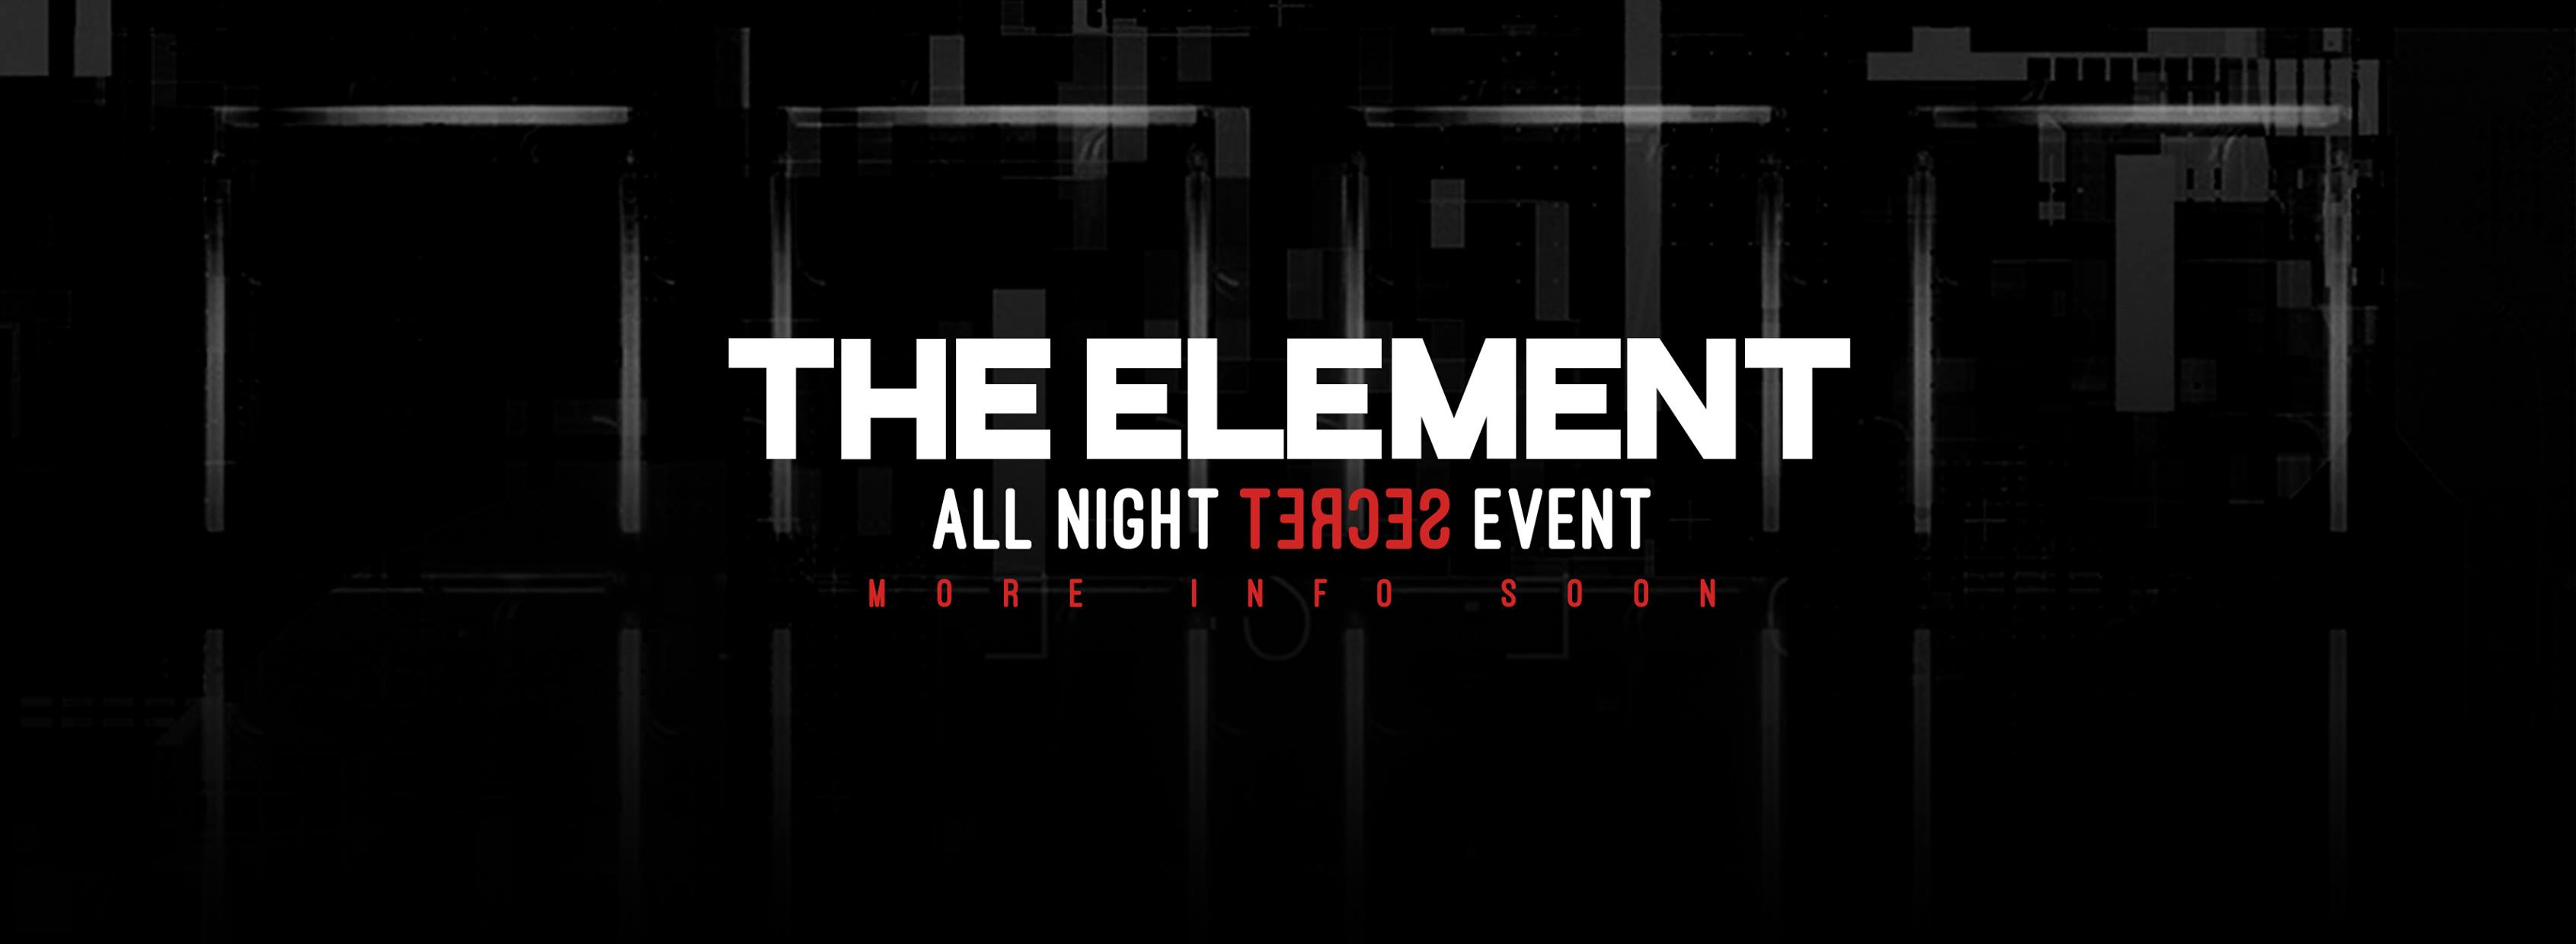 the element all night long